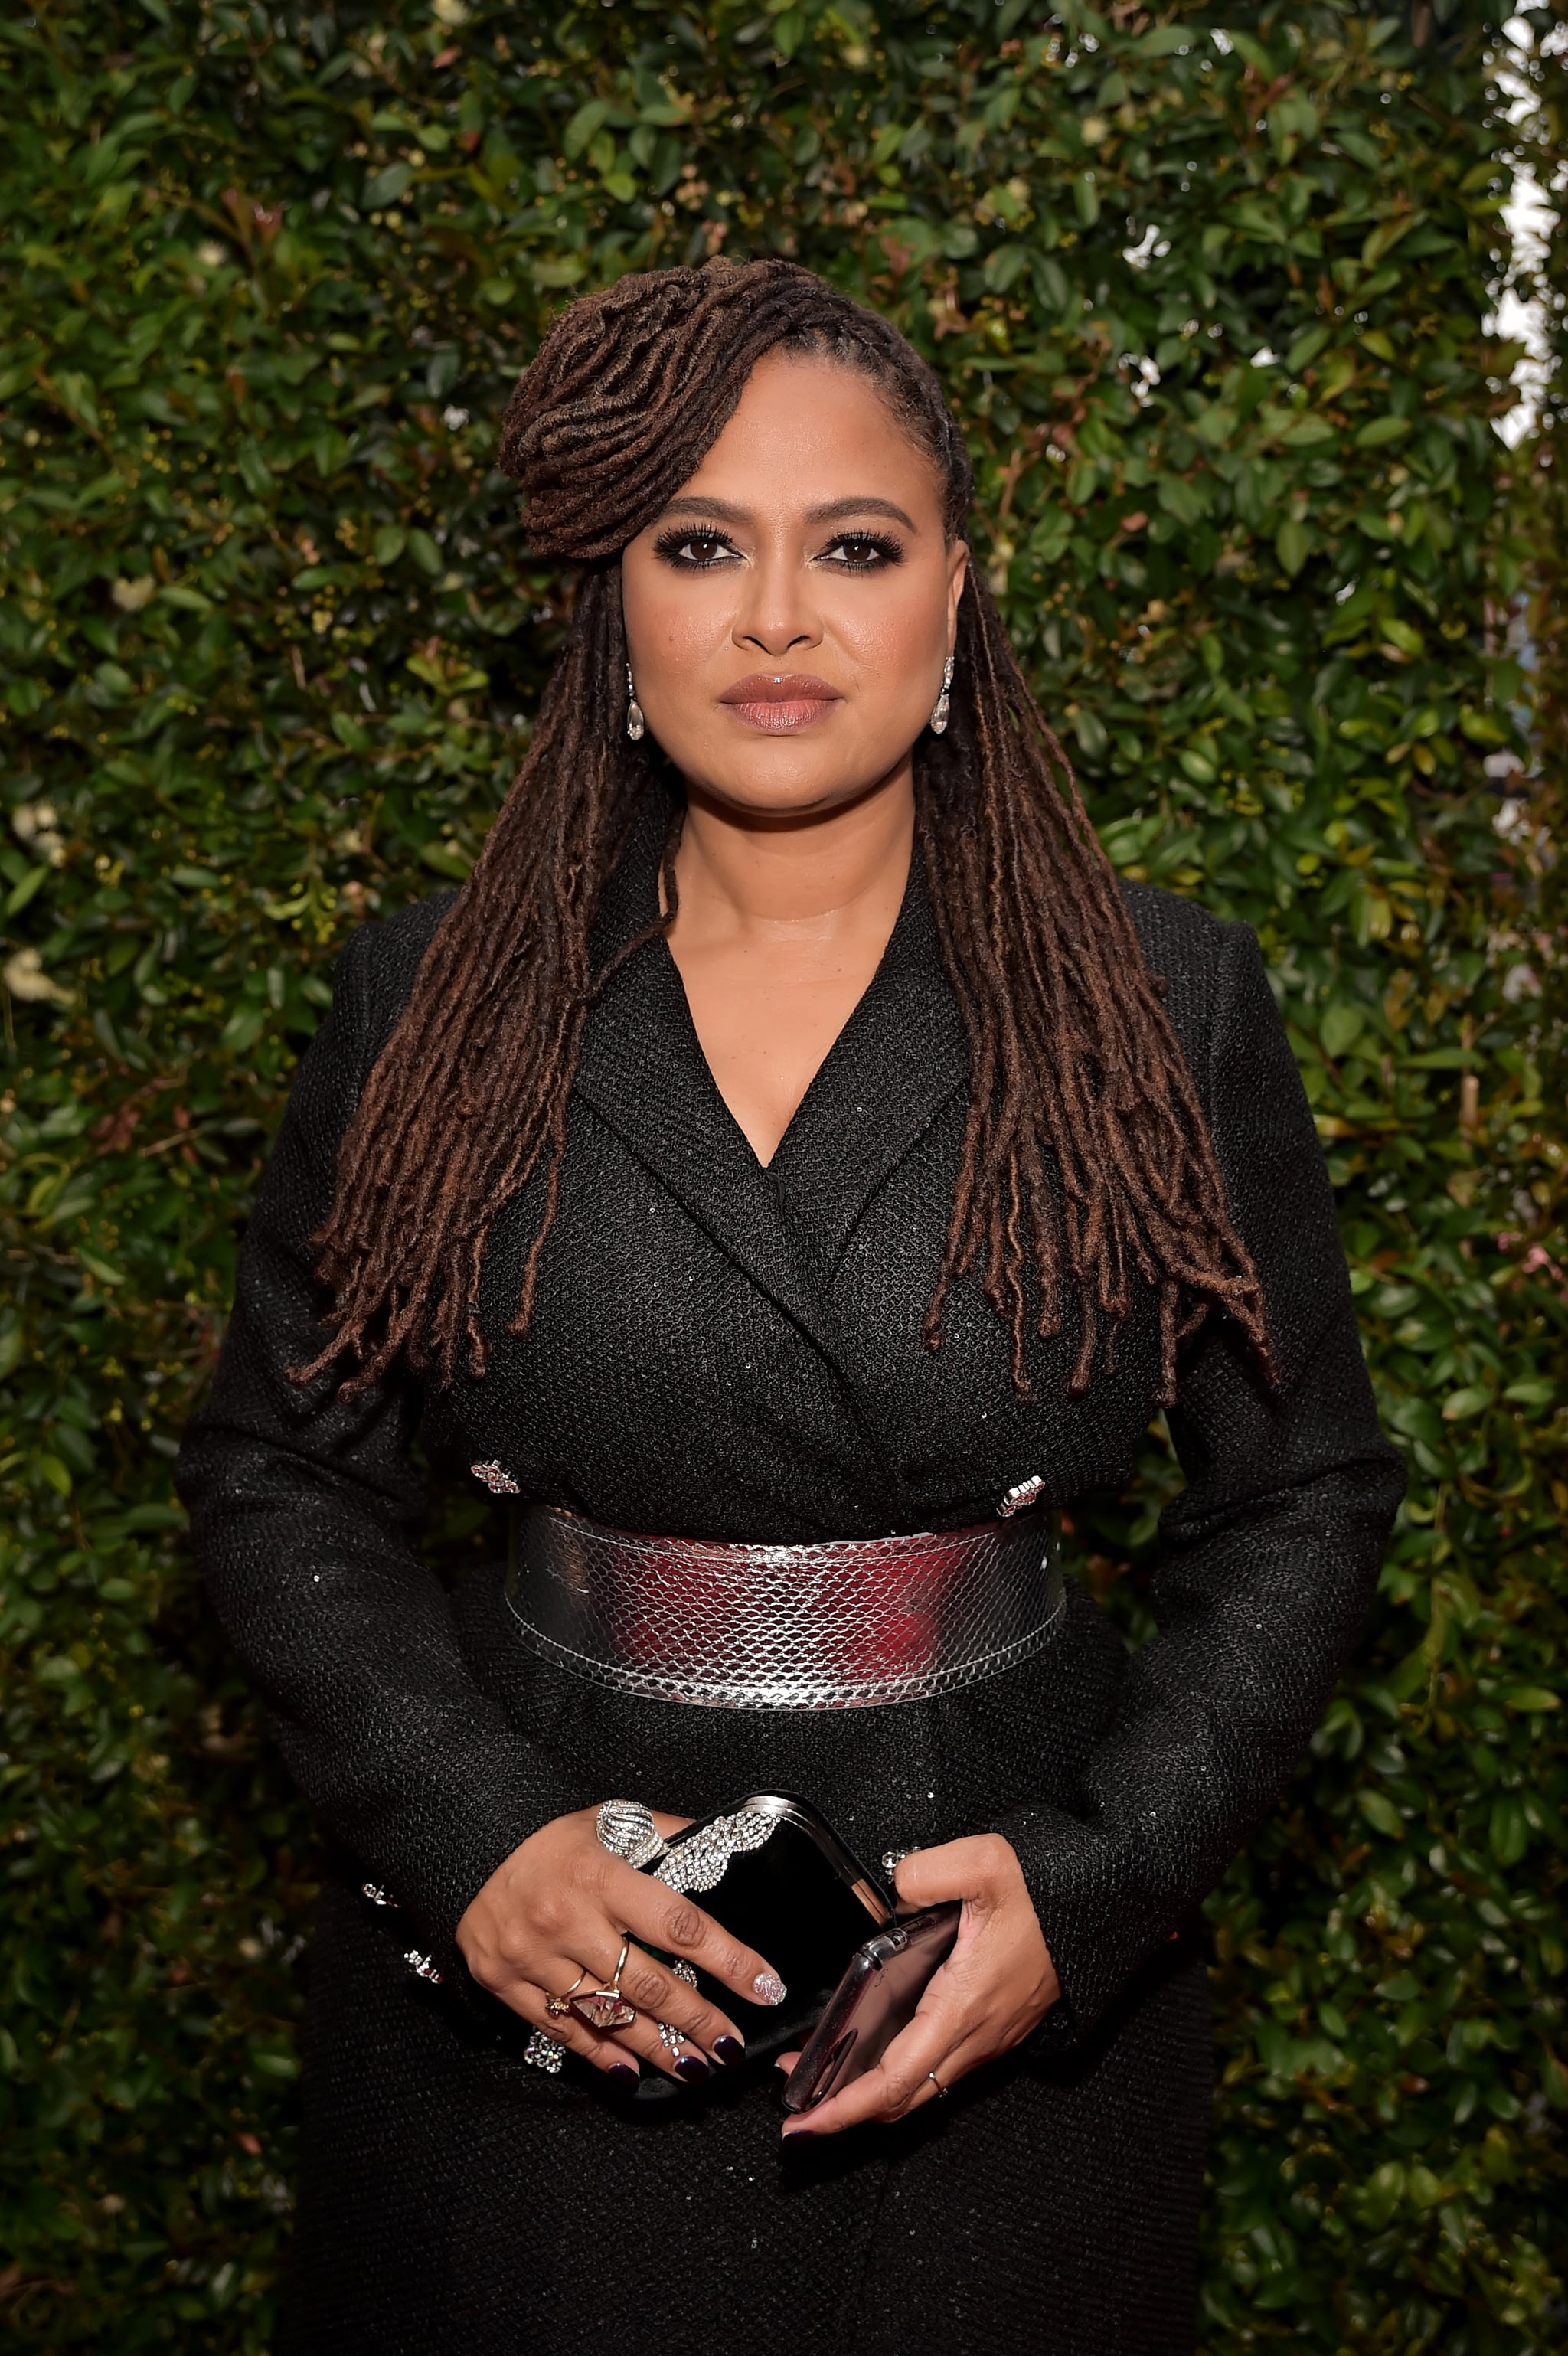 HOLLYWOOD, CALIFORNIA - JUNE 06:  Ava DuVernay attends Audi Presents The 47th AFI Life Achievement Award Gala on June 06, 2019 in Hollywood, California. (Photo by Stefanie Keenan/Getty Images for Audi)